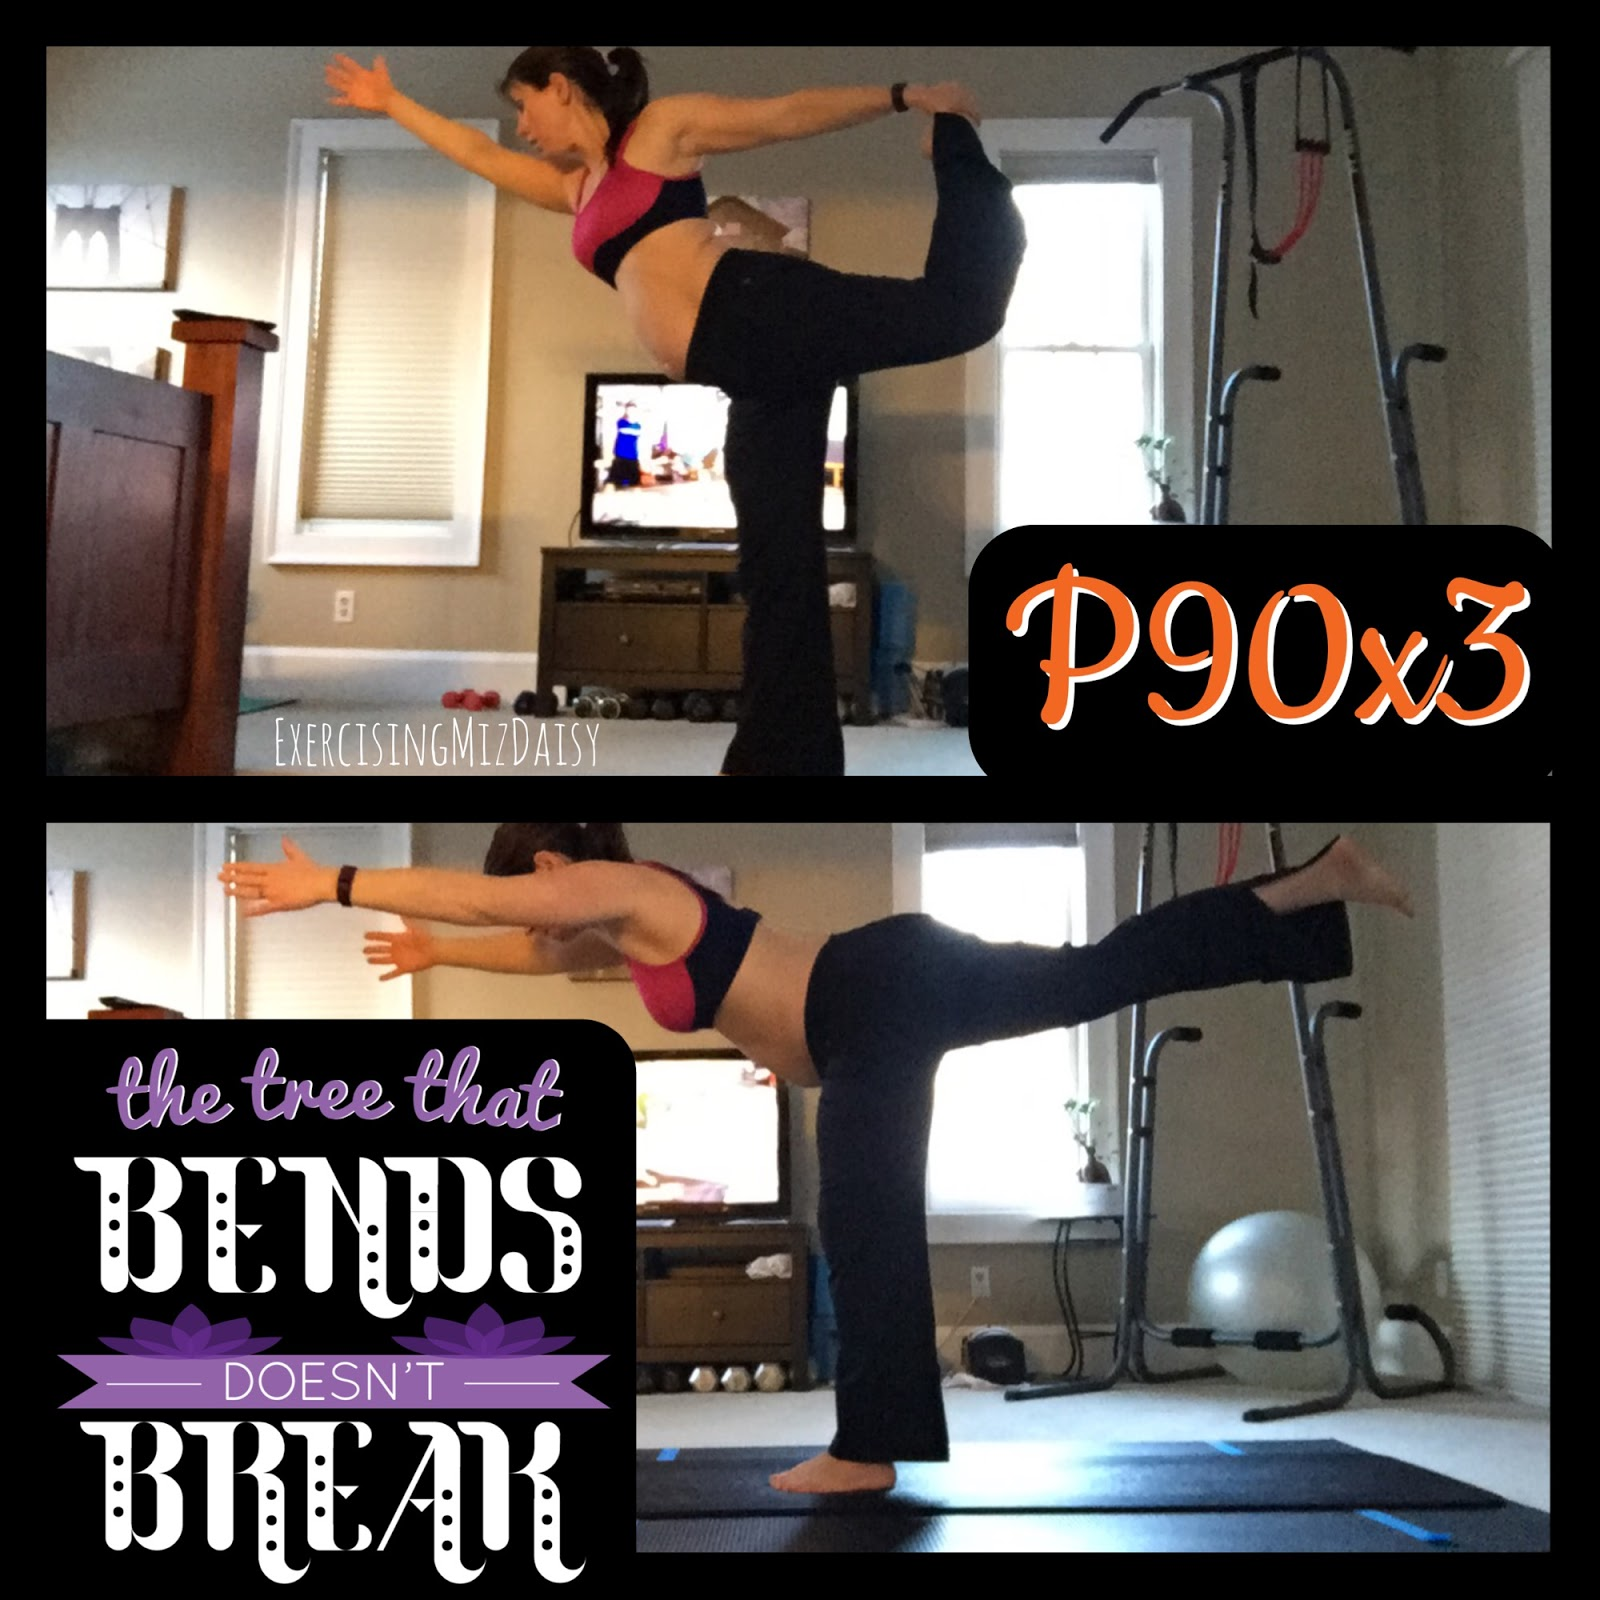 Blogging Miz Daisy: P90x3 Review